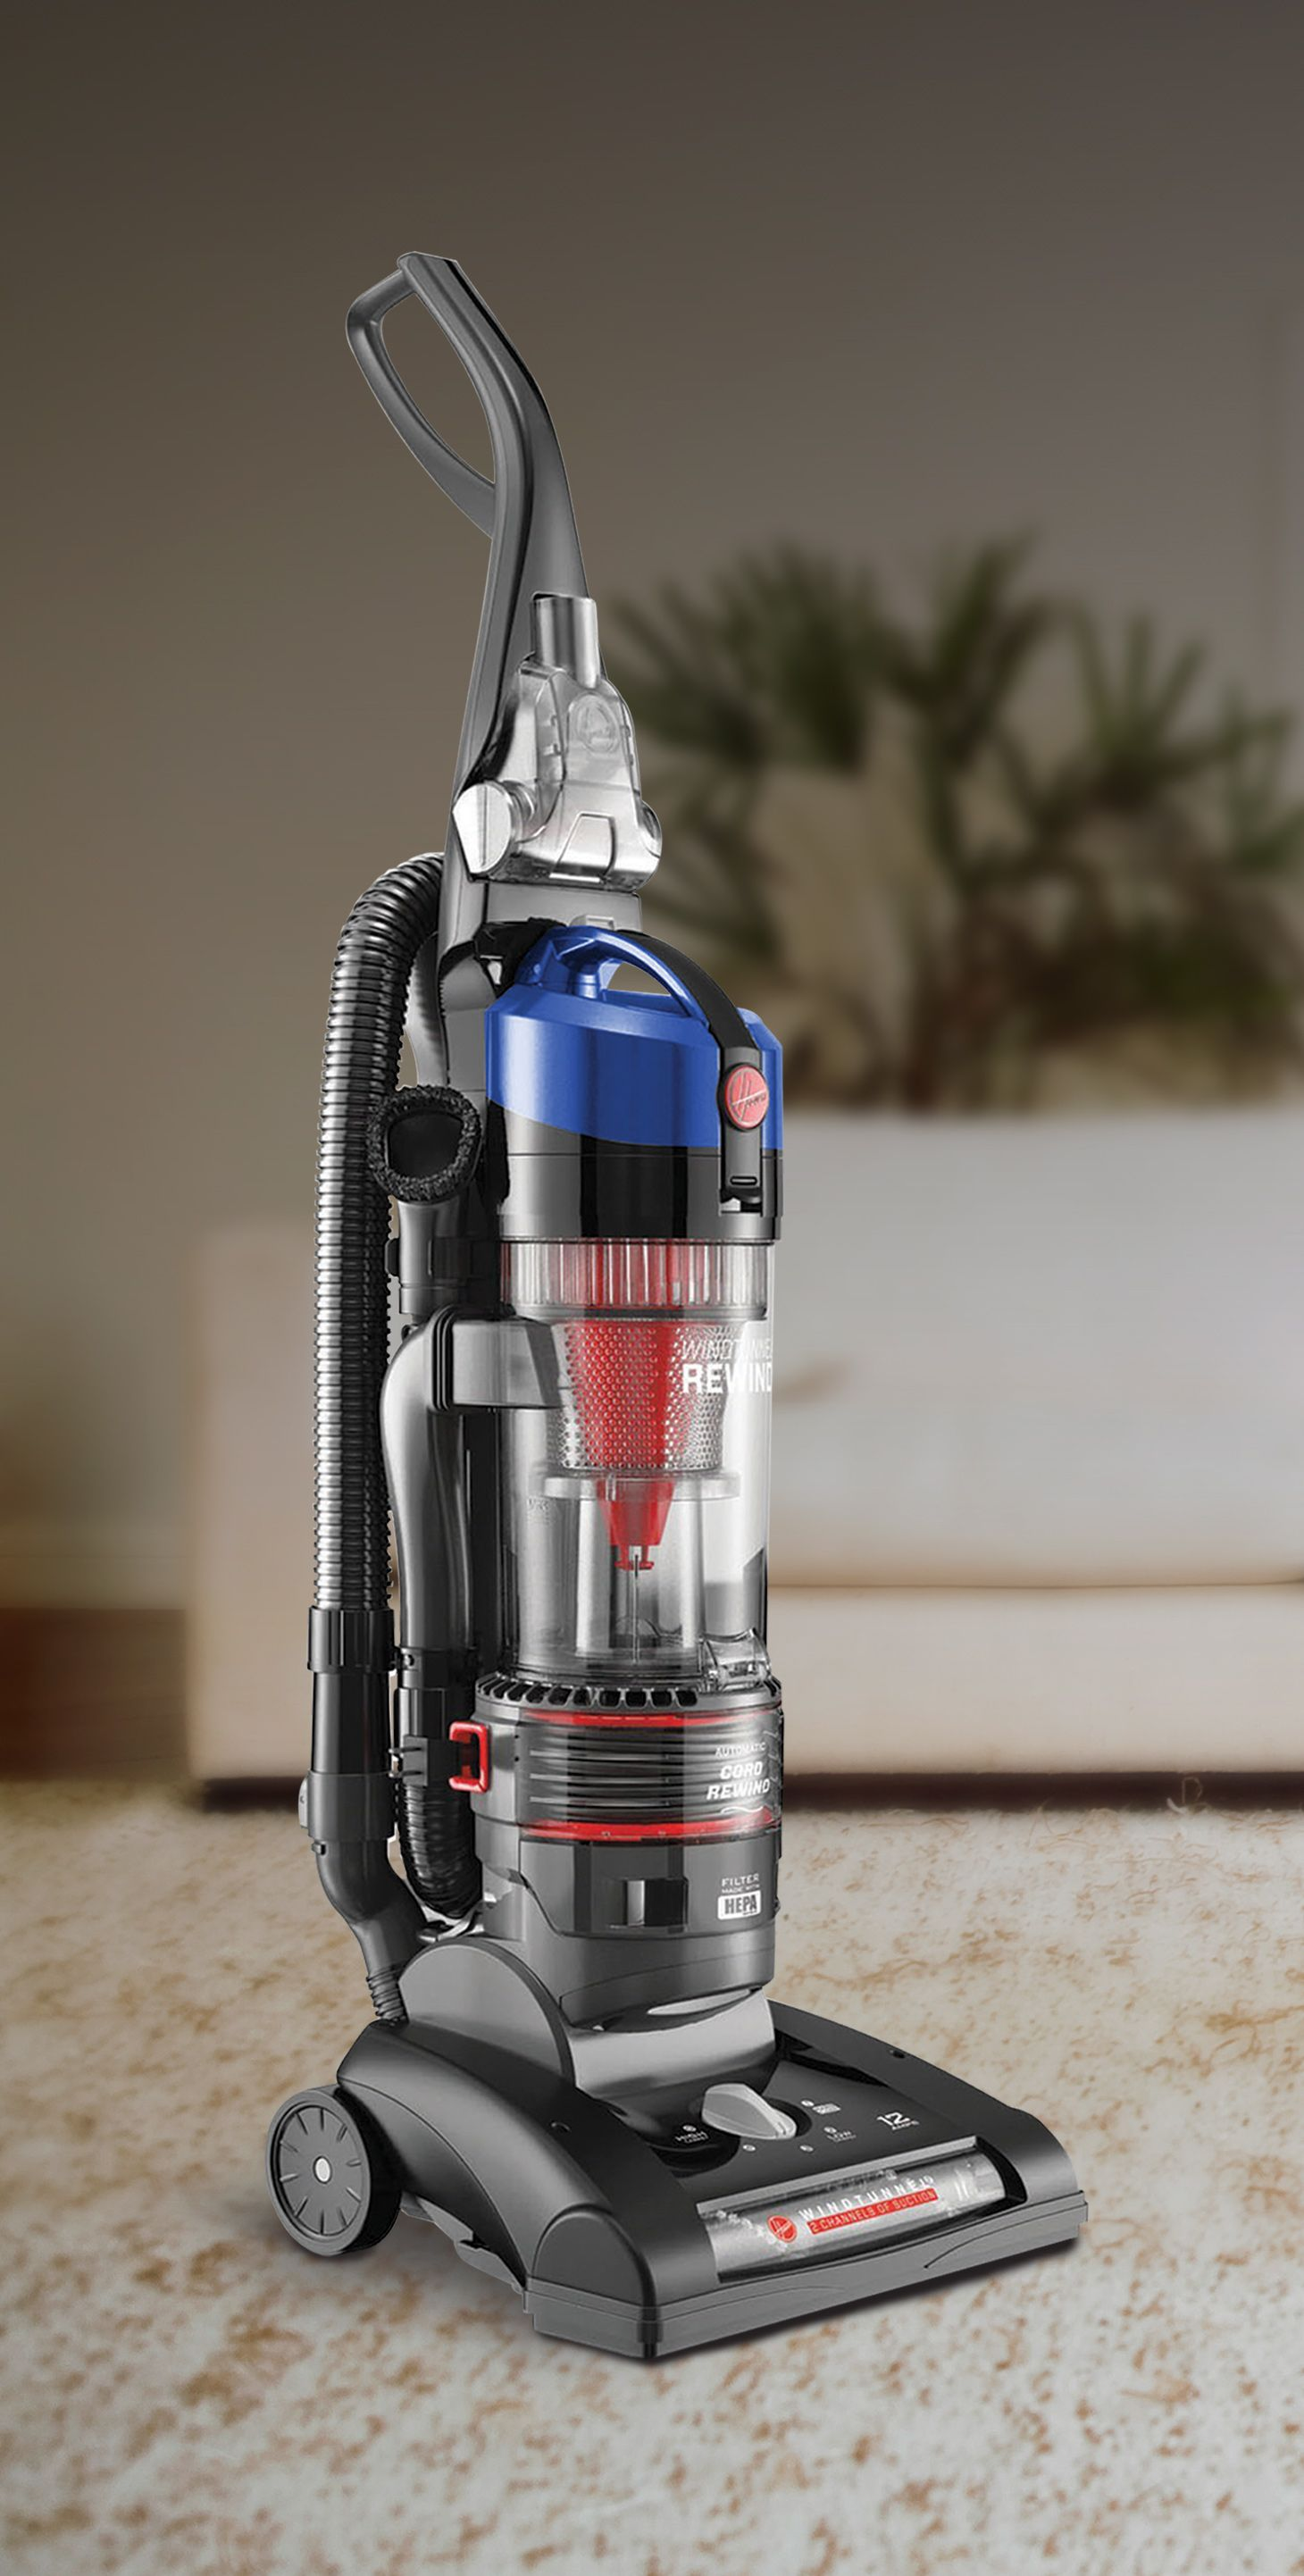 Cleaning Carpet Doesn T Have To Be Stressful With A Hoover Windtunnel 2 Rewind Bagless Upright Va Upright Vacuums Cordless Vacuum Cleaner How To Clean Carpet